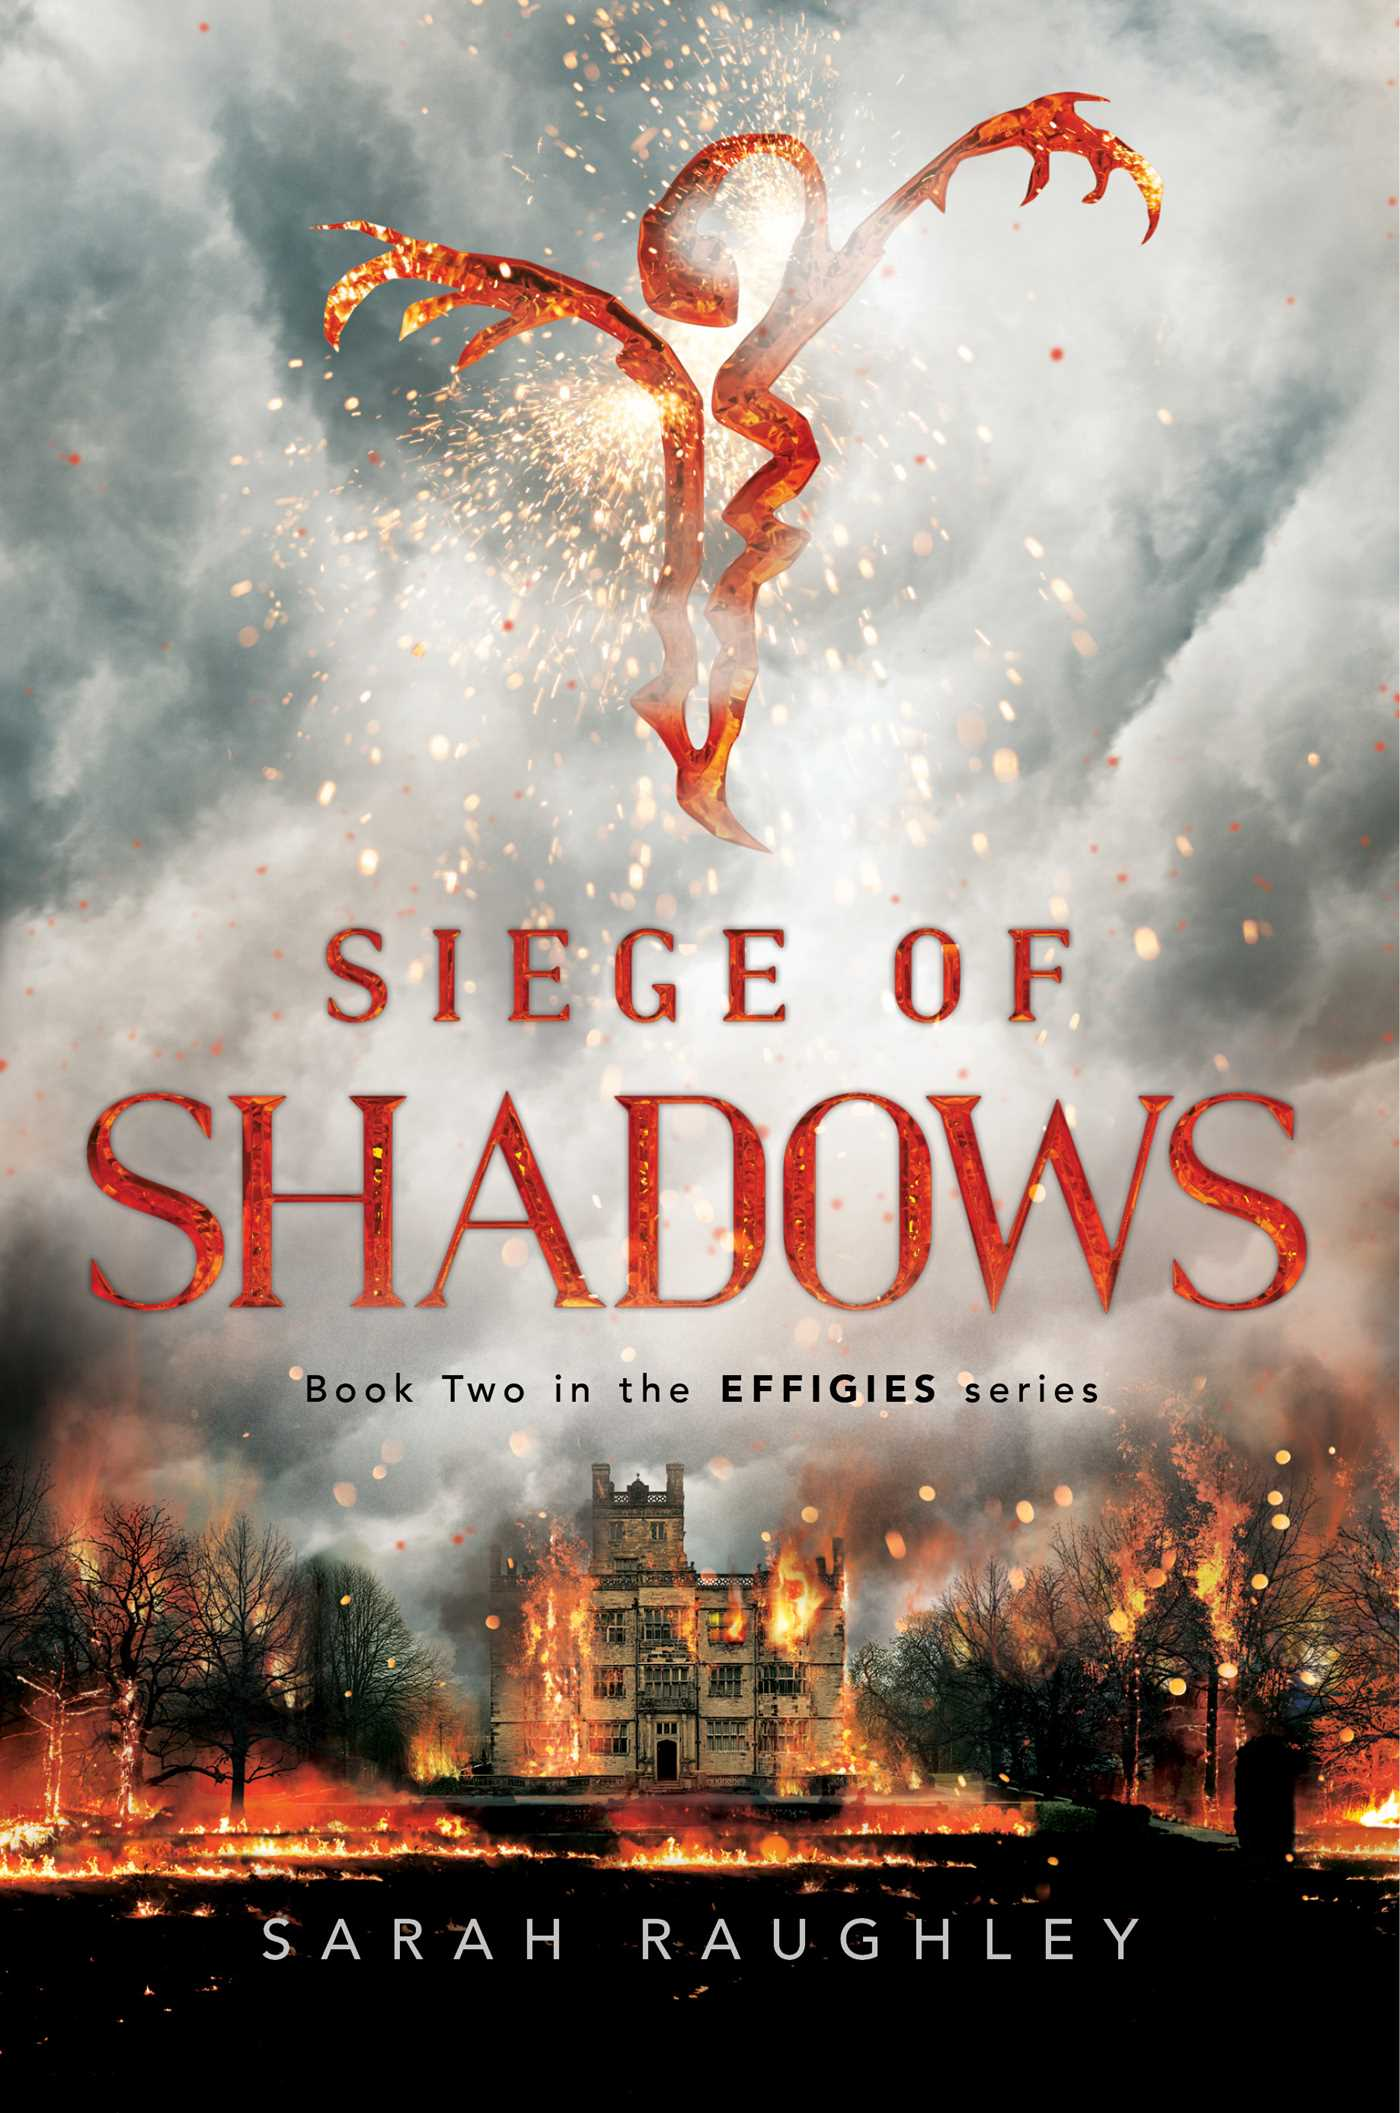 Siege of shadows 9781481466806 hr